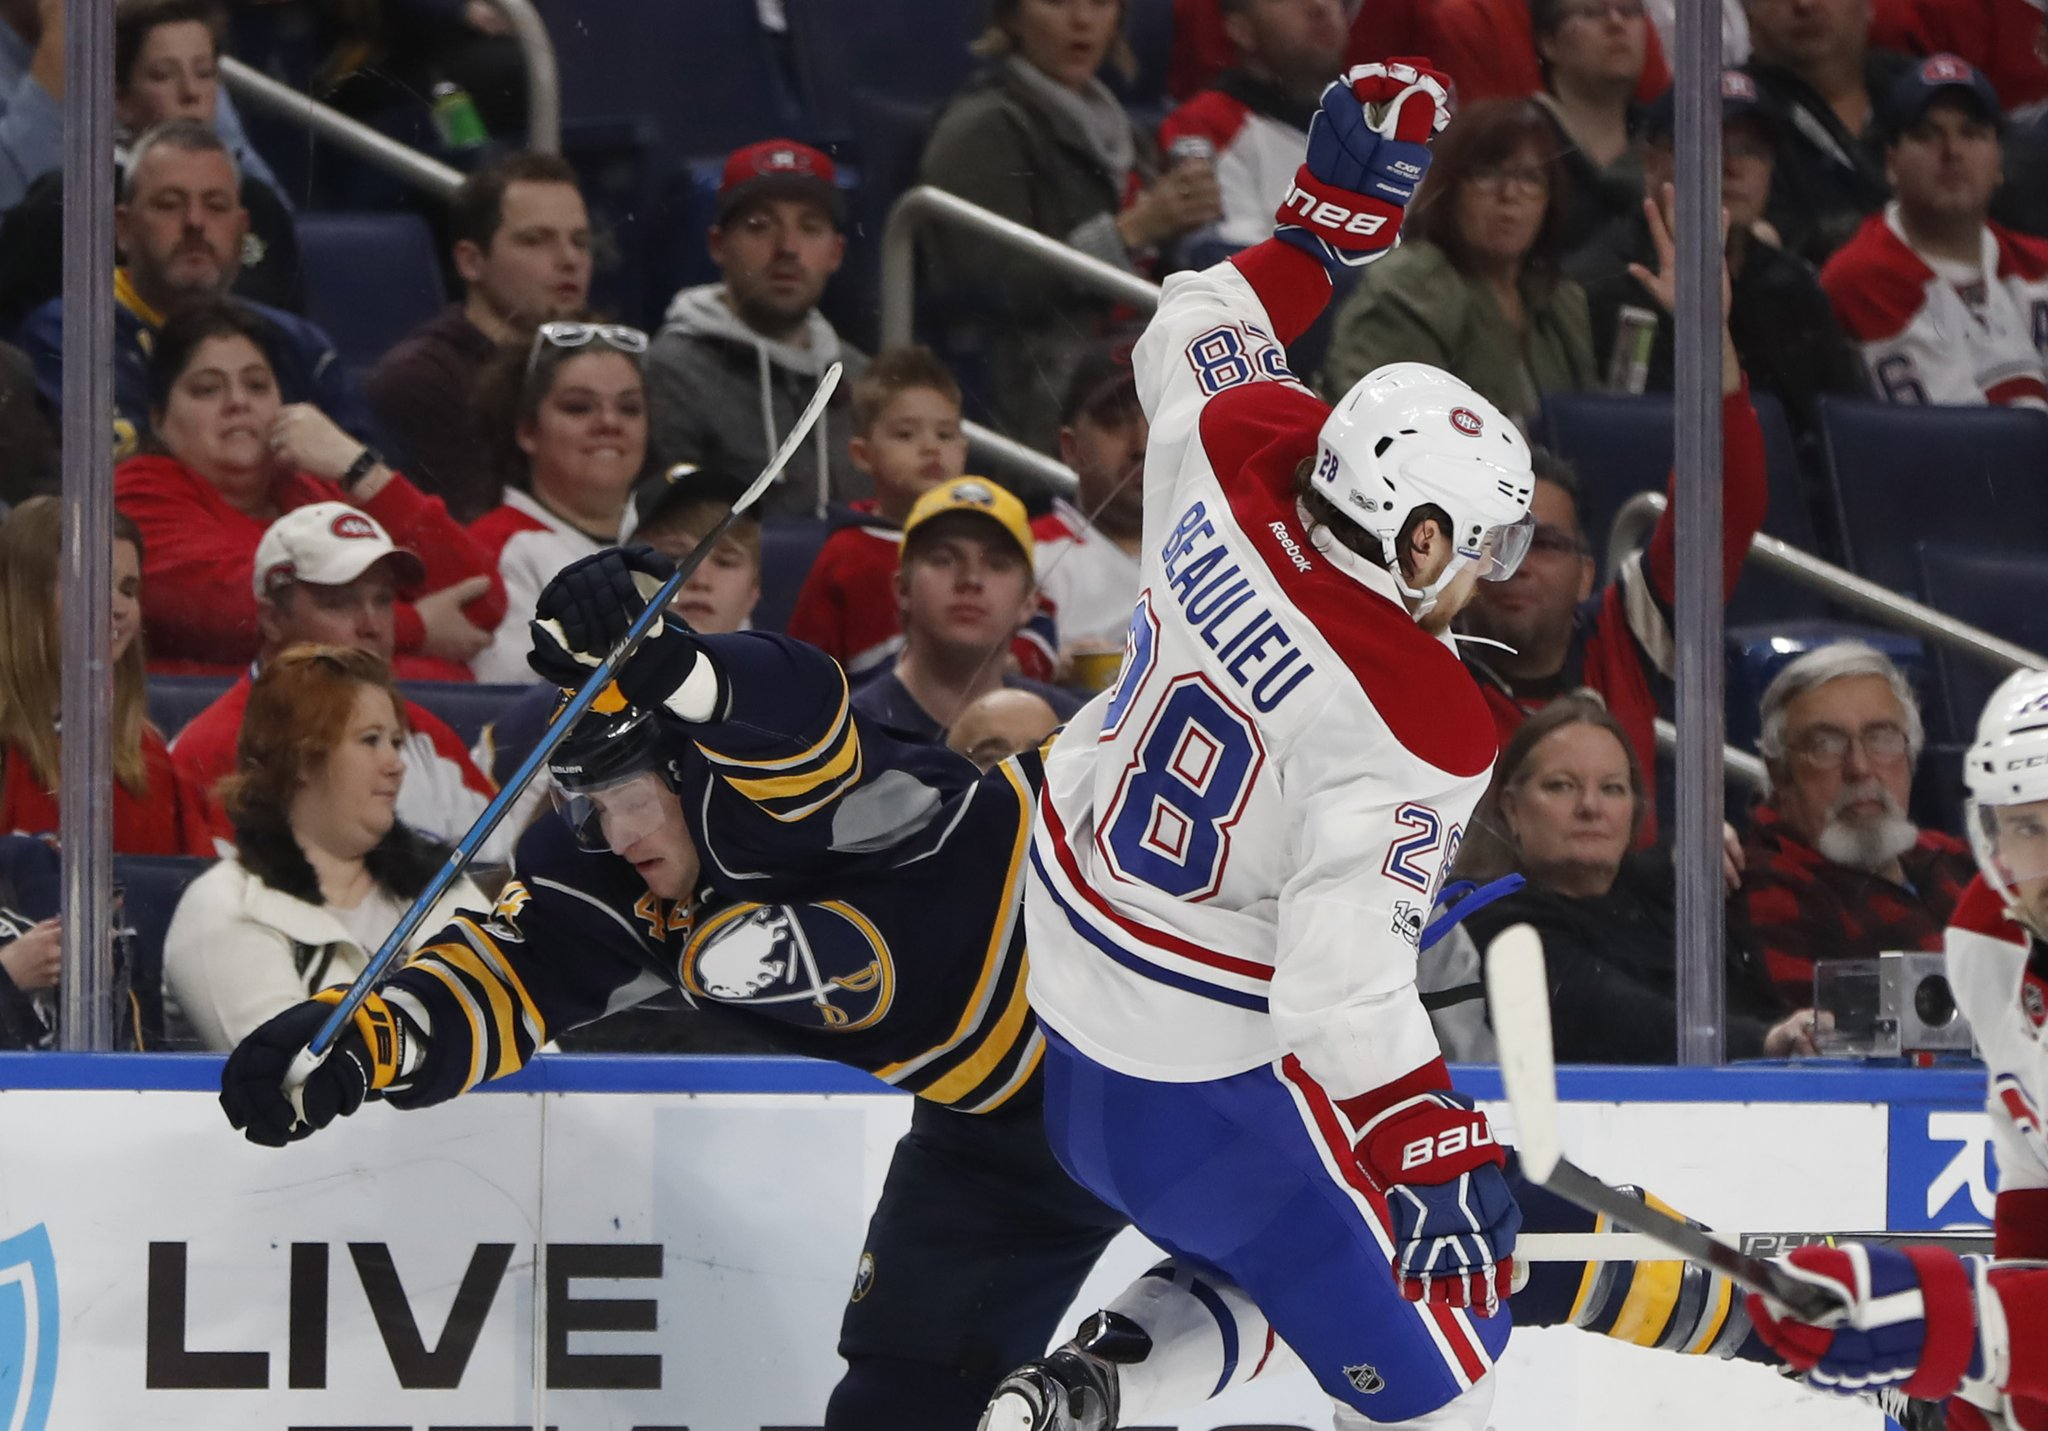 The Sabres' Nicolas Deslauriers and Montreal's Nathan Beaulieu collide during the first period Wednesday. (Harry Scull Jr/Buffalo News)